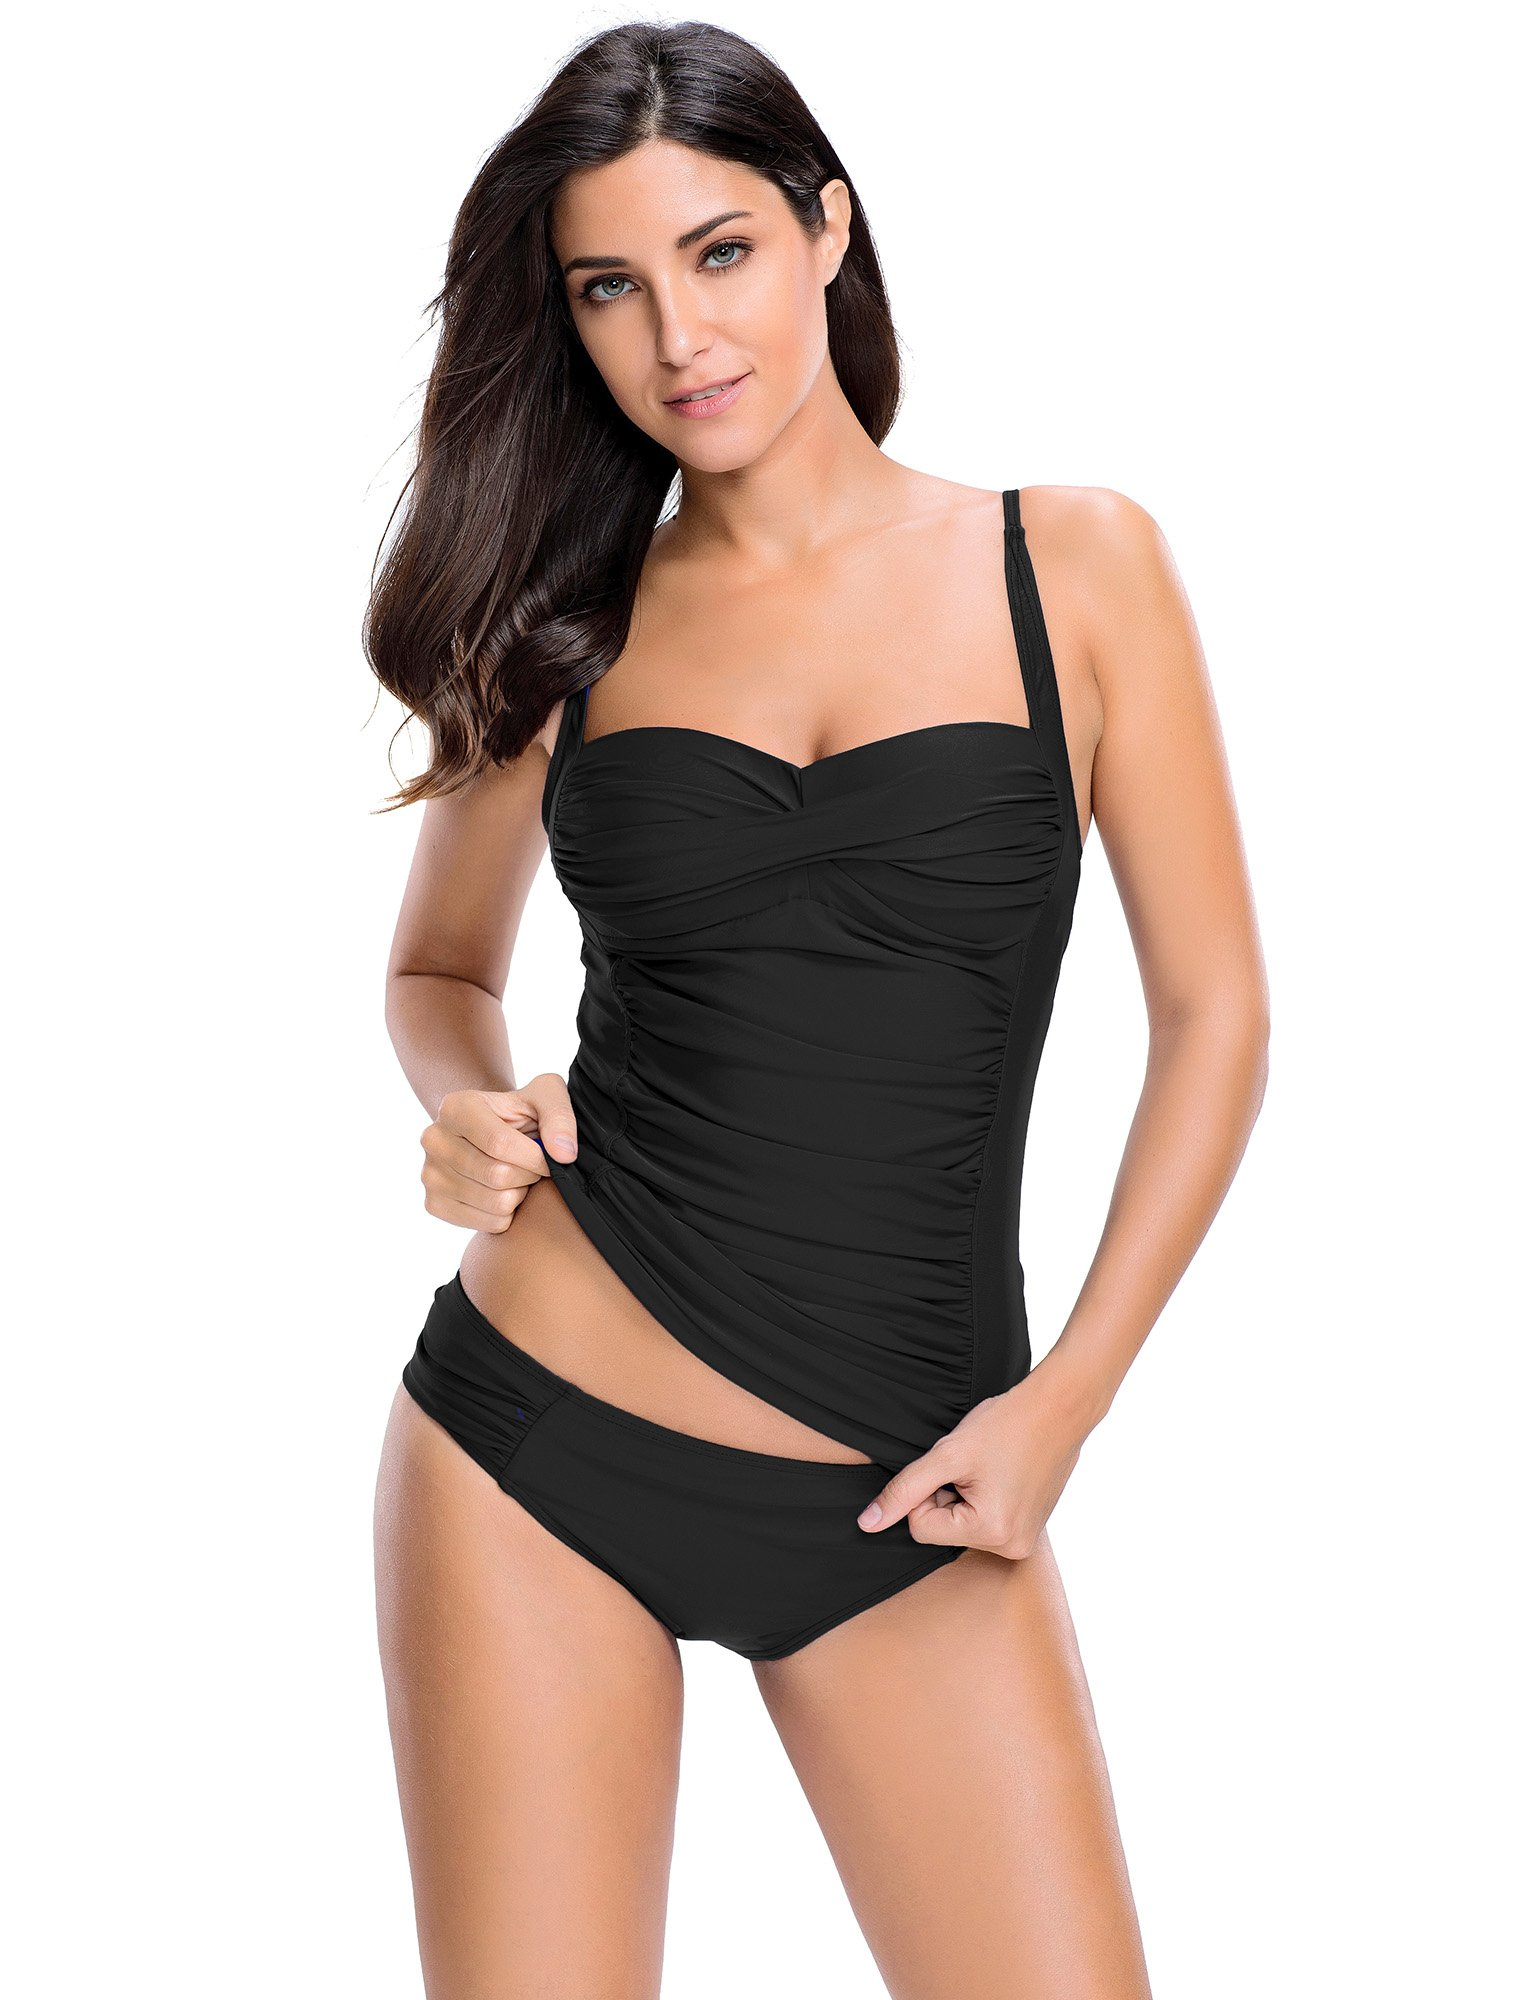 ACKKIA Women's Retro Slimming Ruched Solid Black Strappy Padded Surf Two Piece Tankini Set Swimwear Sports Swimming Suit Separates DD Bathing Suit Tops Mom Swimsuits for Women Black Size L